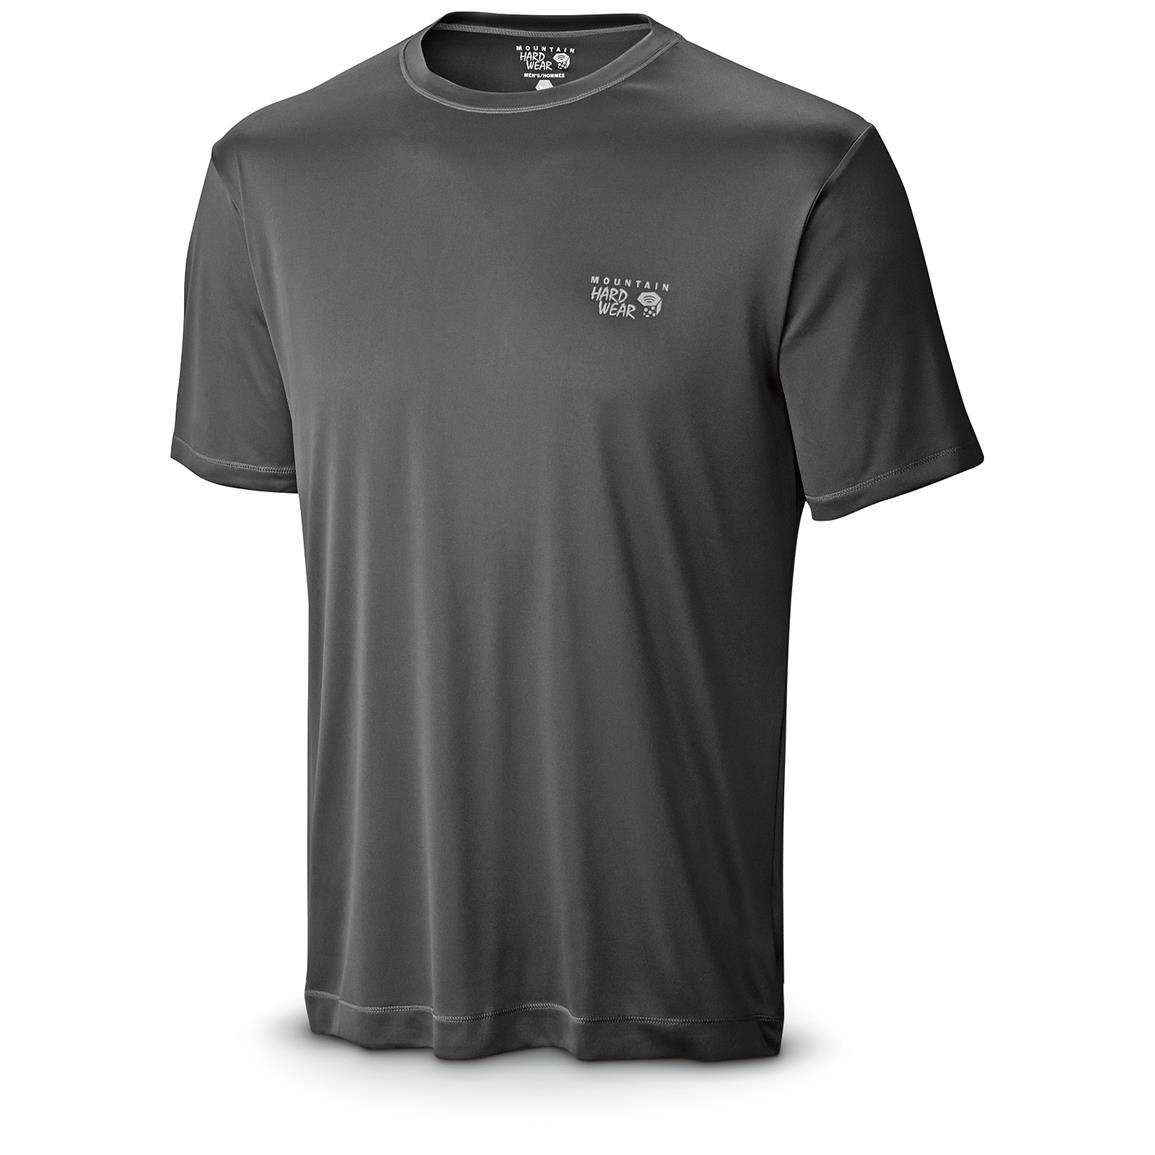 Mountain Hardwear Men's Wicked T-Shirt, Short Sleeved, Black Front